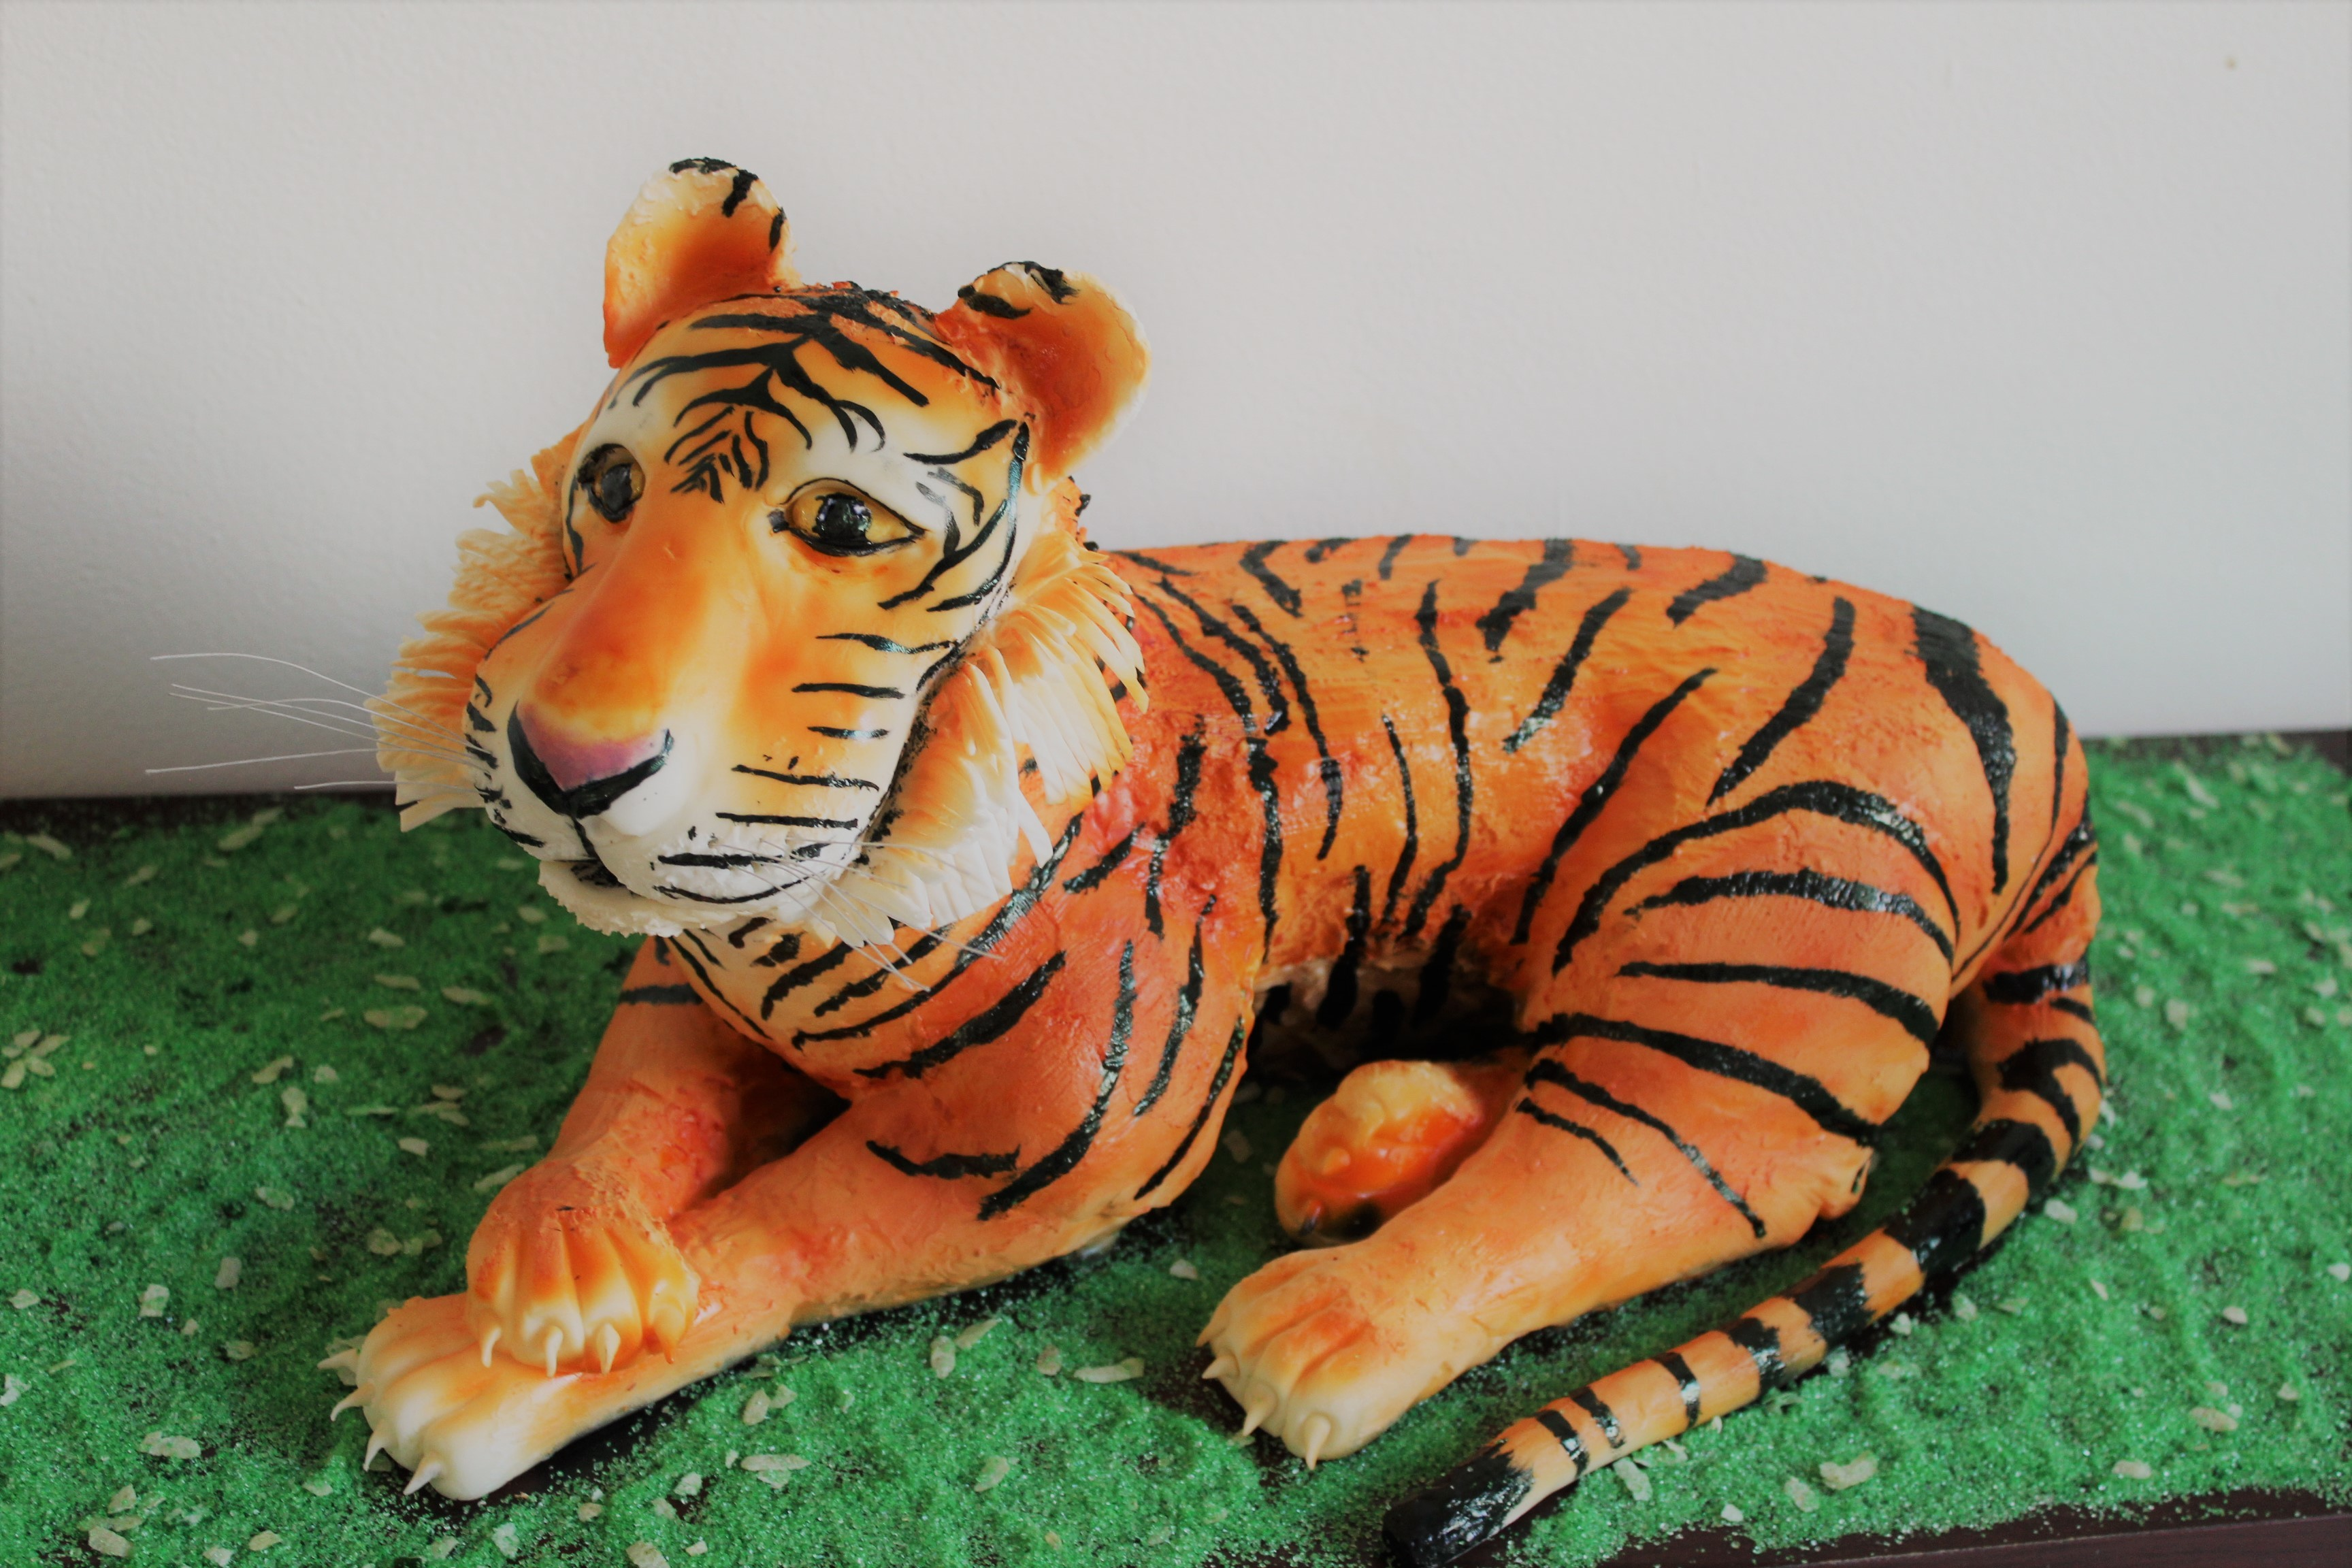 Animal-Rights-SARIKA-HIRAVE-sarikas-cake-creations-TIGER.jpg#asset:13735